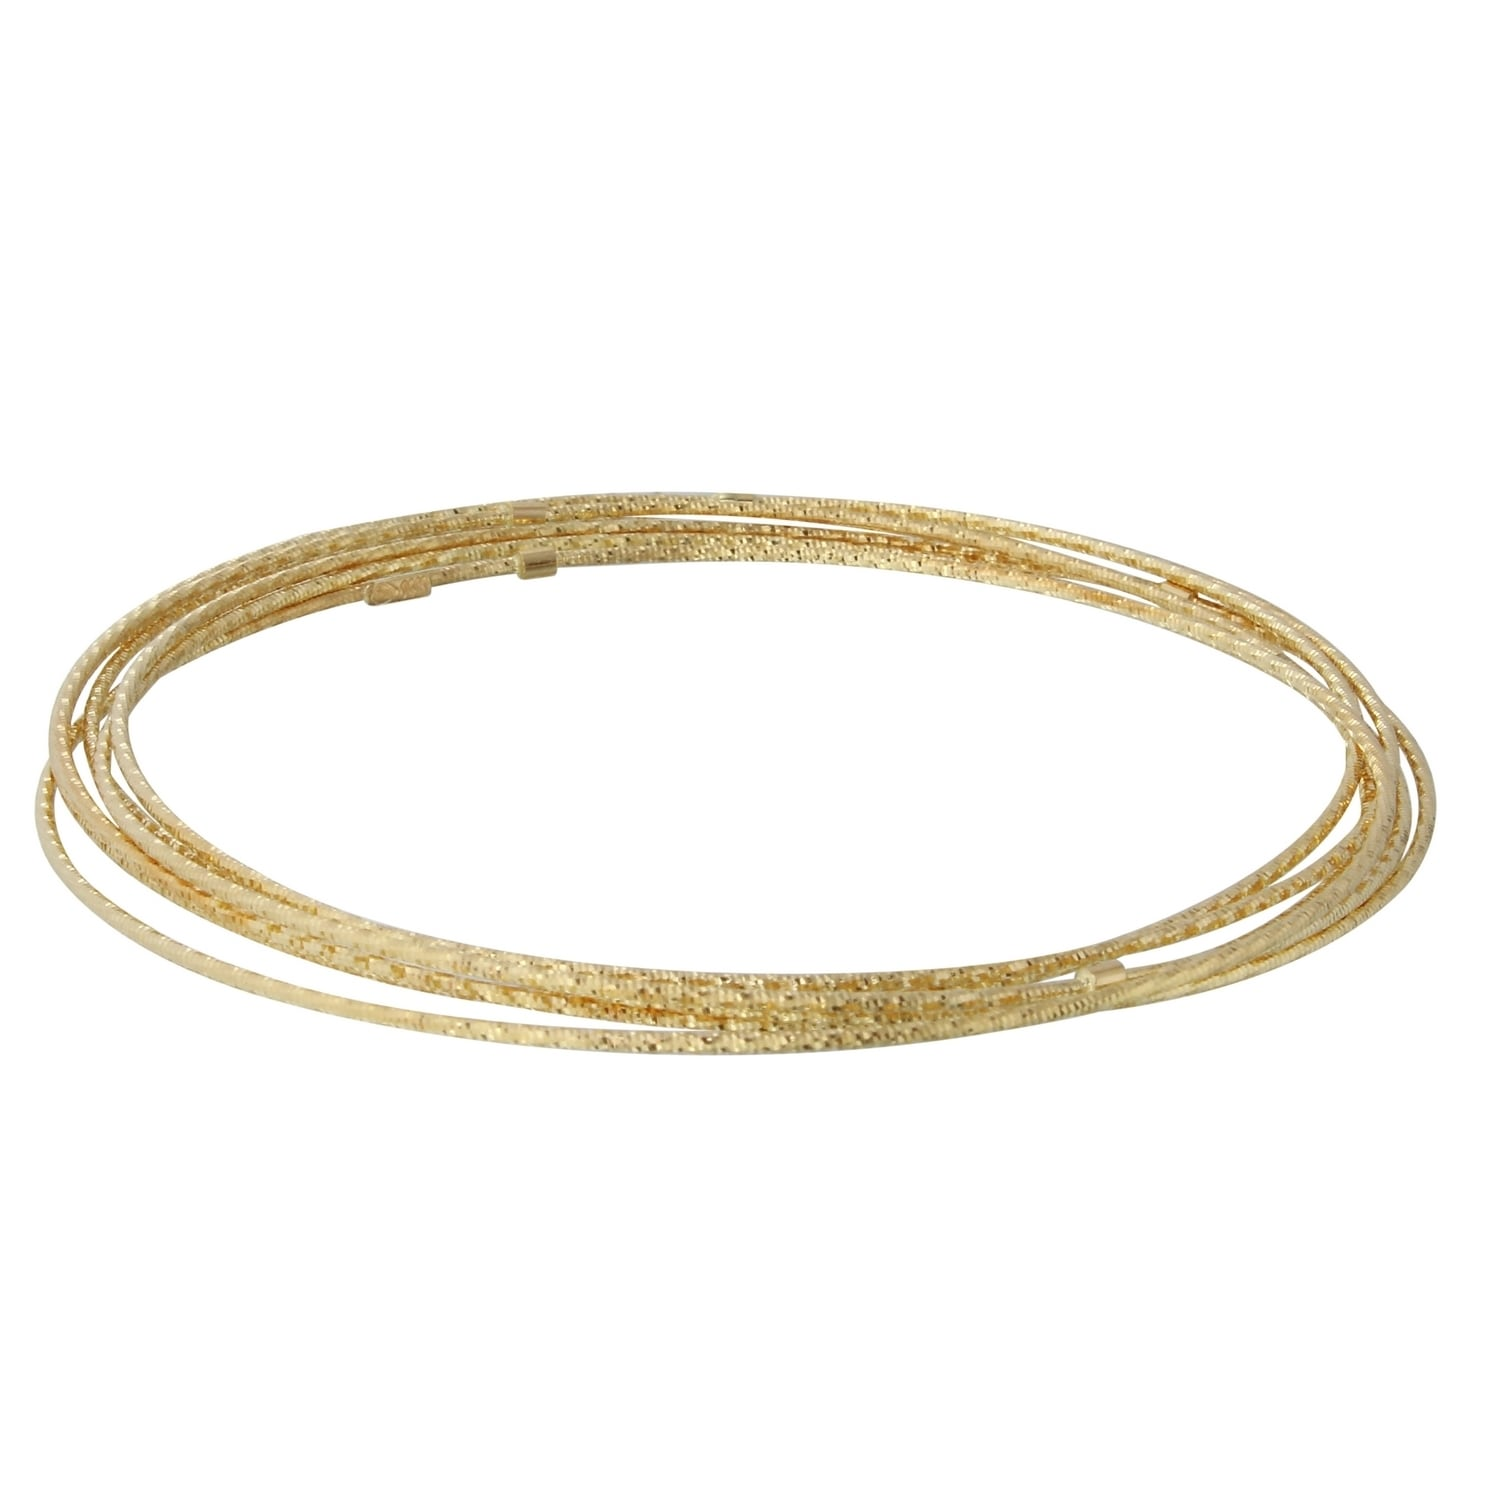 flex products tube bangle bar plated gold bangles knot bracelets jewelree karat